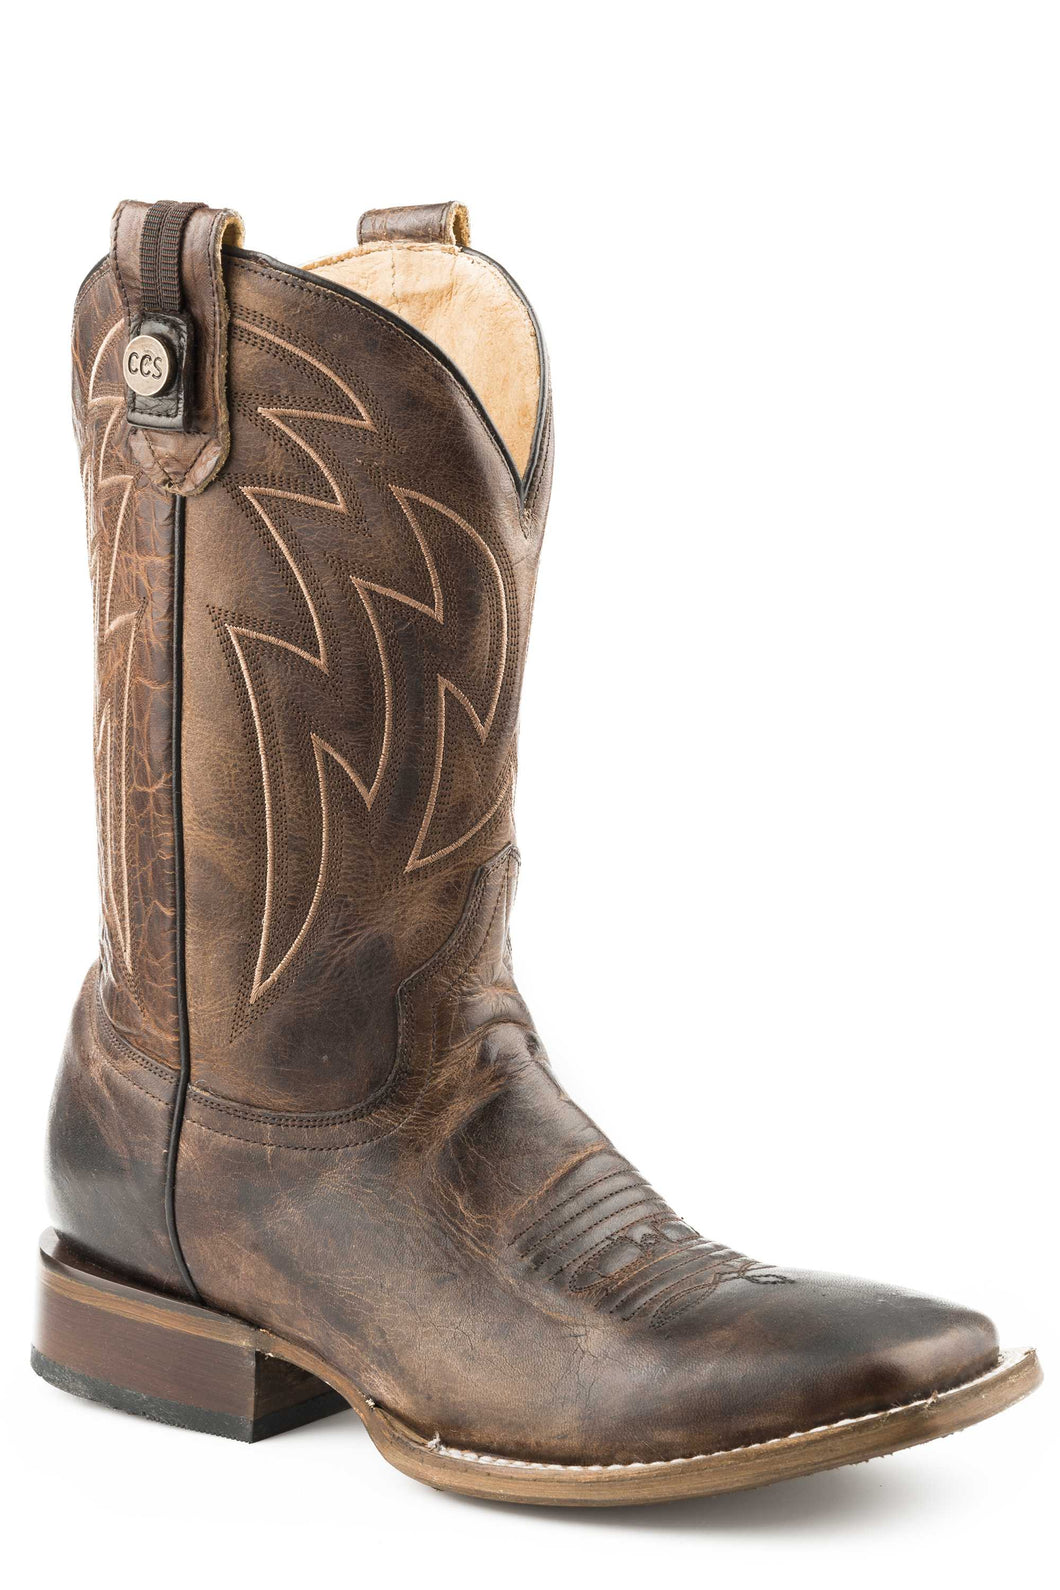 Rider Ccs Boot Mens Boots Burnished Tan Vamp Rider Pckt Outside